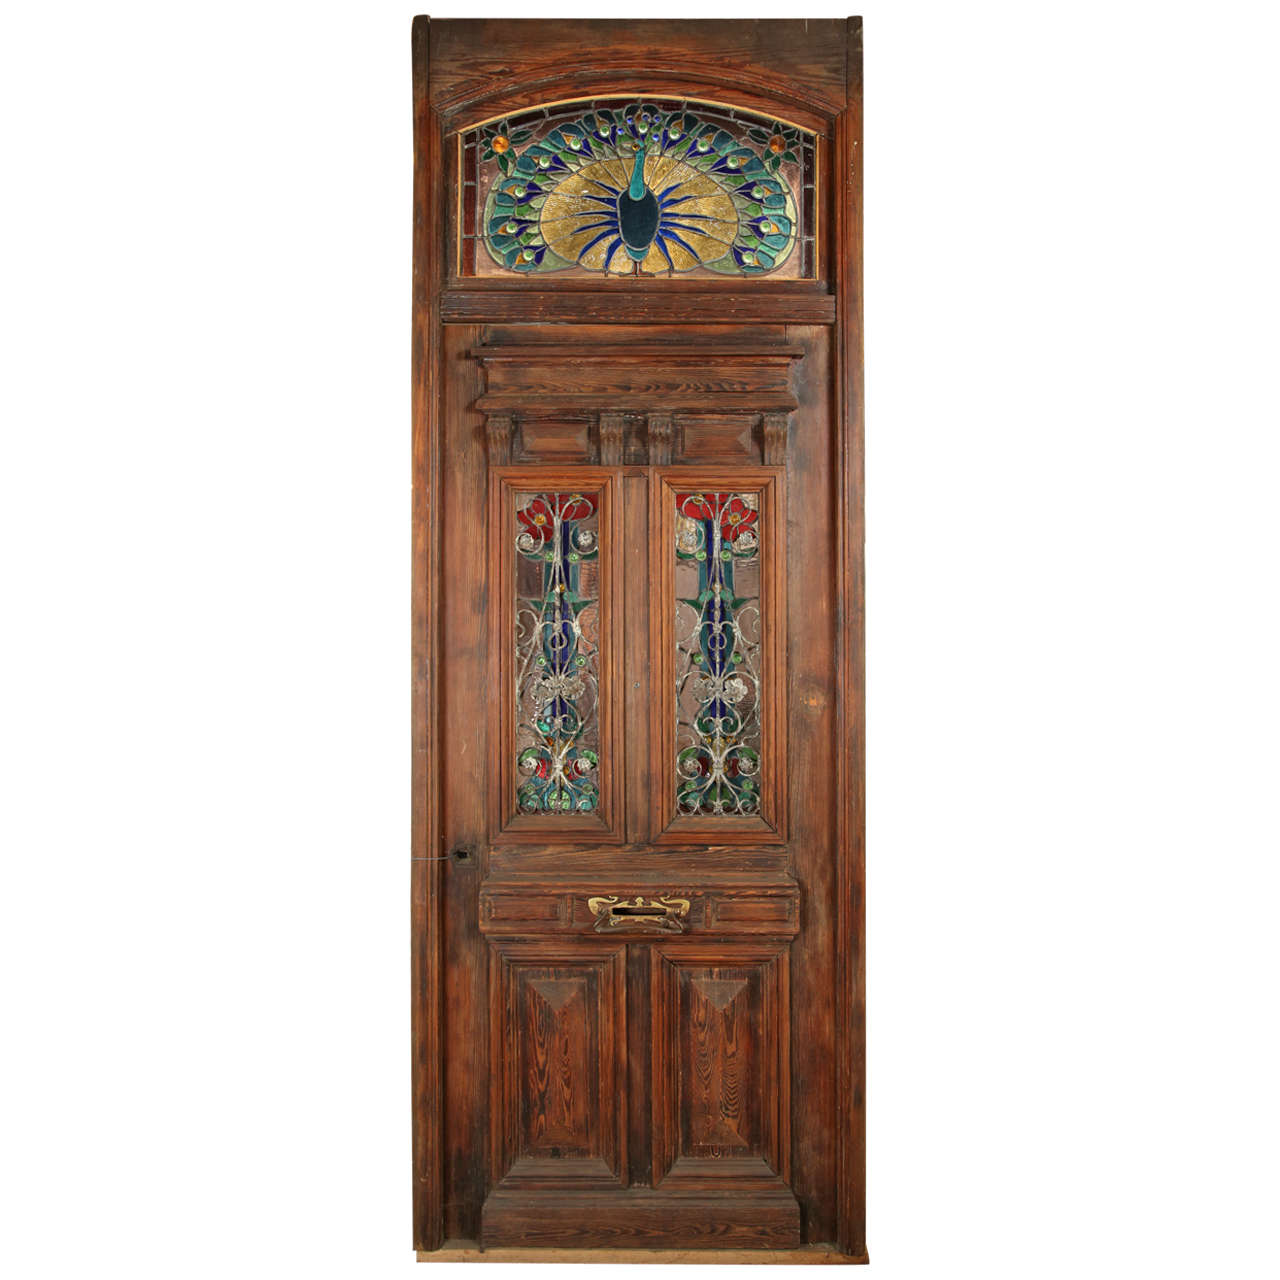 Heart Pine Entry Door with Stained Glass Windows; Peacock Transom For Sale - Heart Pine Entry Door With Stained Glass Windows; Peacock Transom At